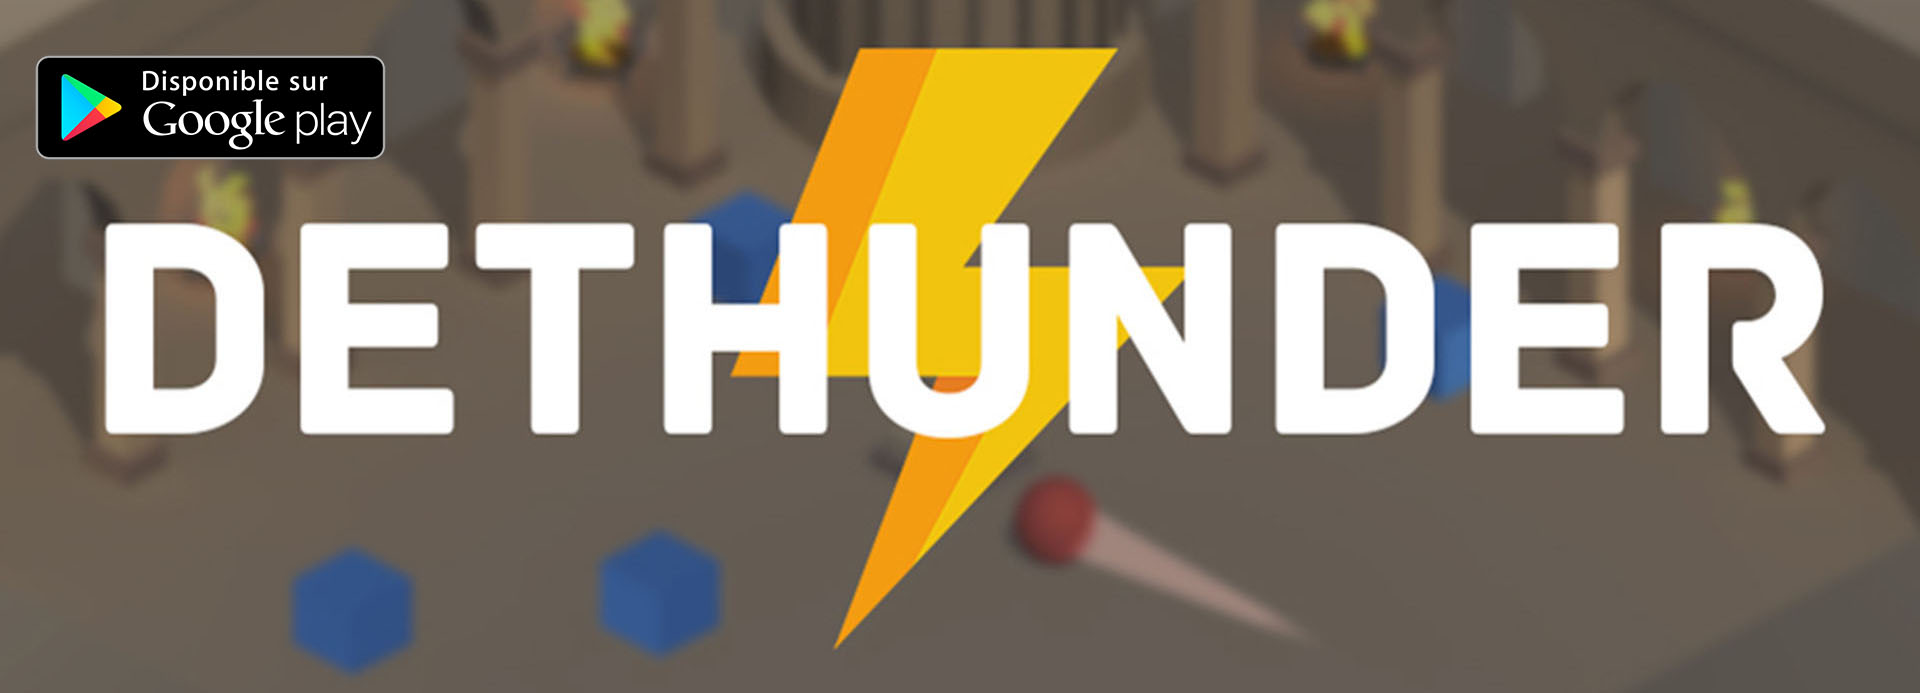 Dethunder google play